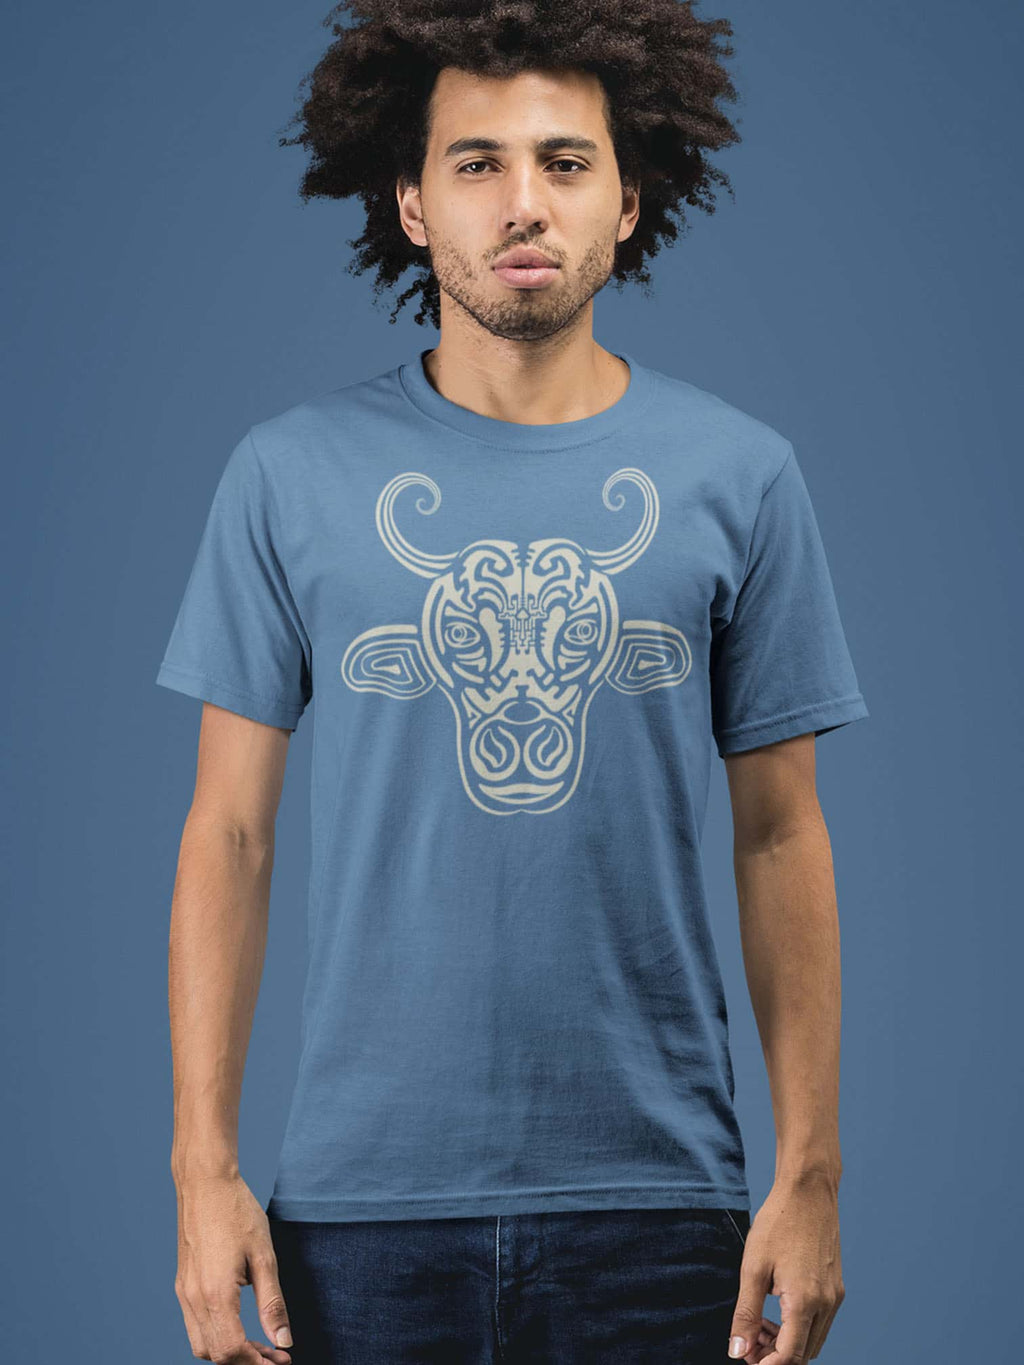 Holy Cow Made To Order Men T-Shirt - Faded Denim